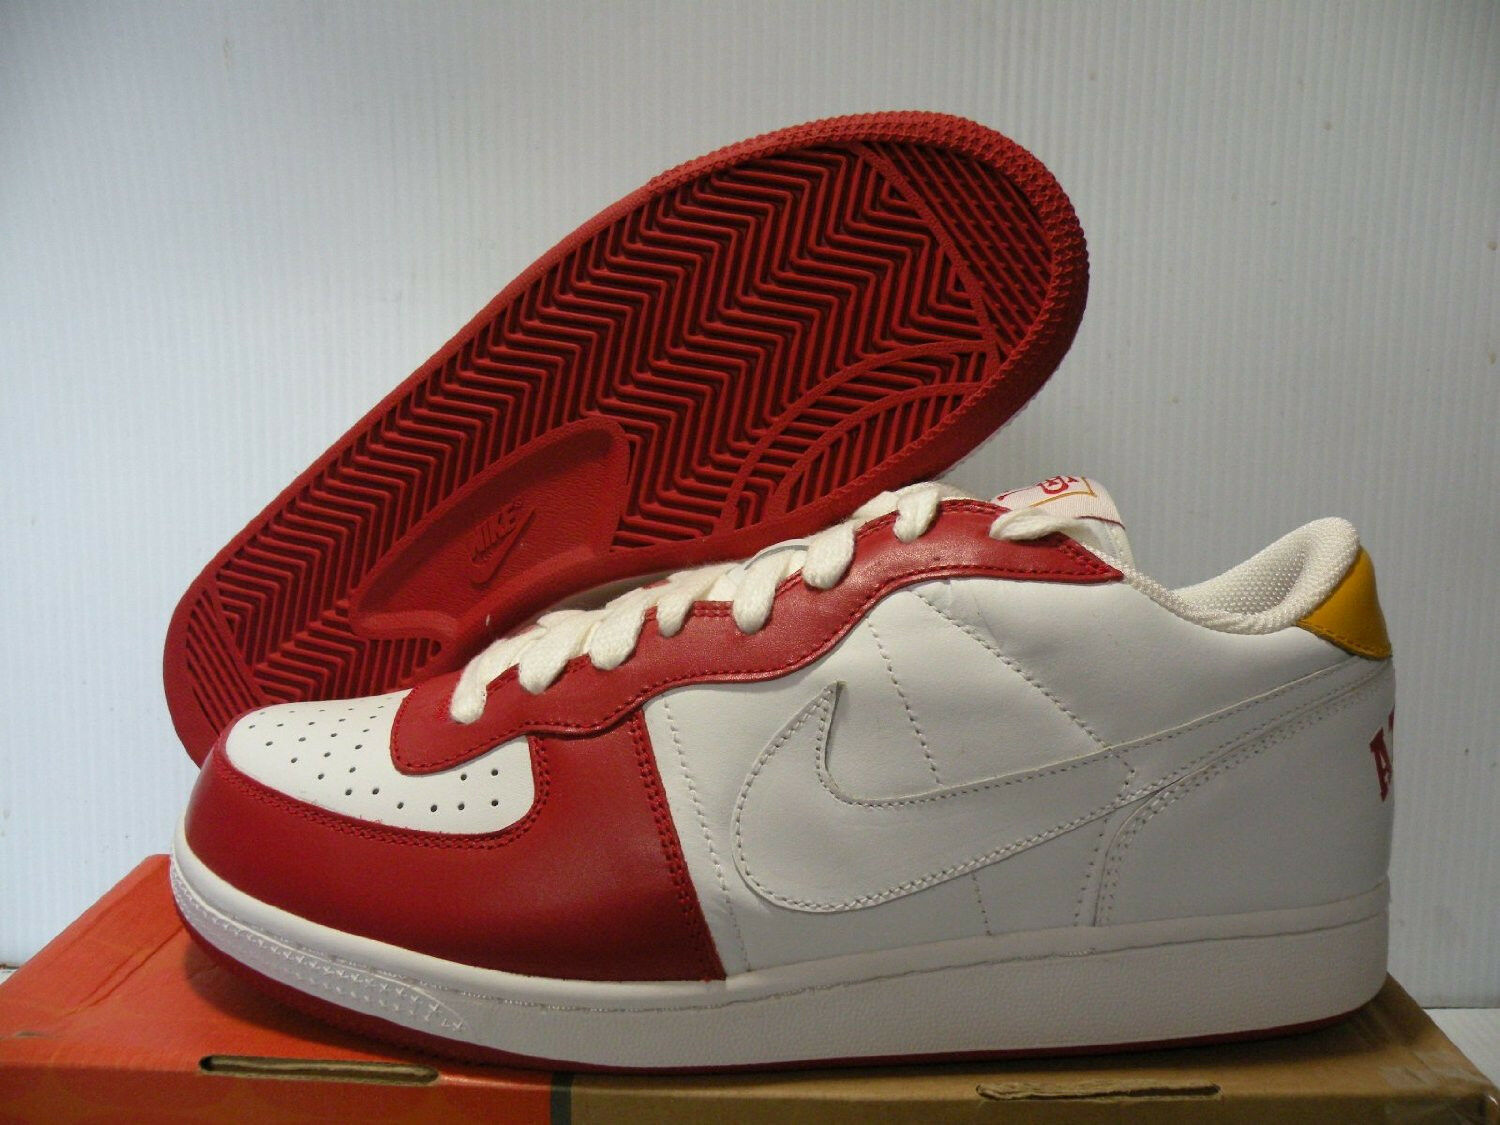 NIKE ZOOM TERMINATOR LOW SNEAKERS MEN SHOES WHITE RED 10208-111 SIZE 10.5 NEW